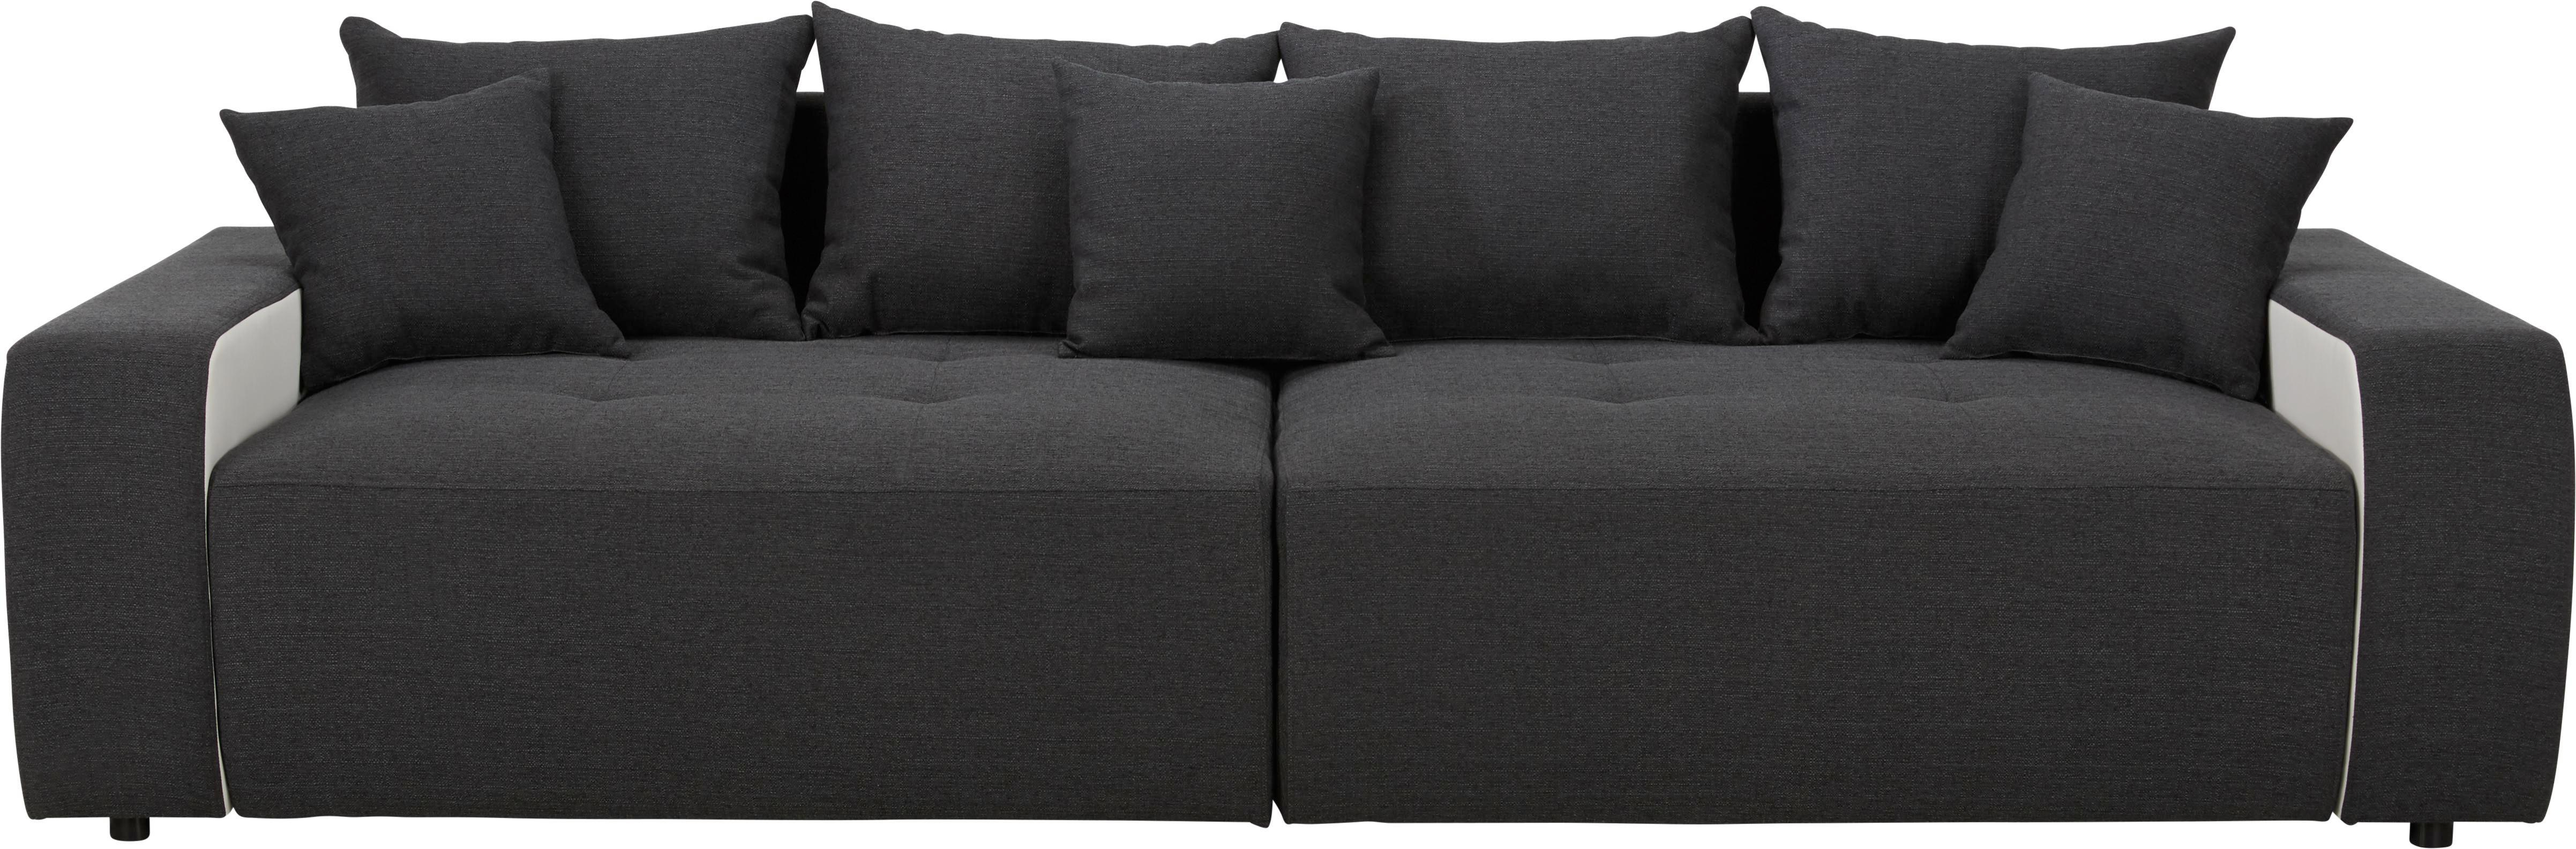 big sofa auf rechnung affordable couch with big sofa auf rechnung good cool gallery of sofa u. Black Bedroom Furniture Sets. Home Design Ideas